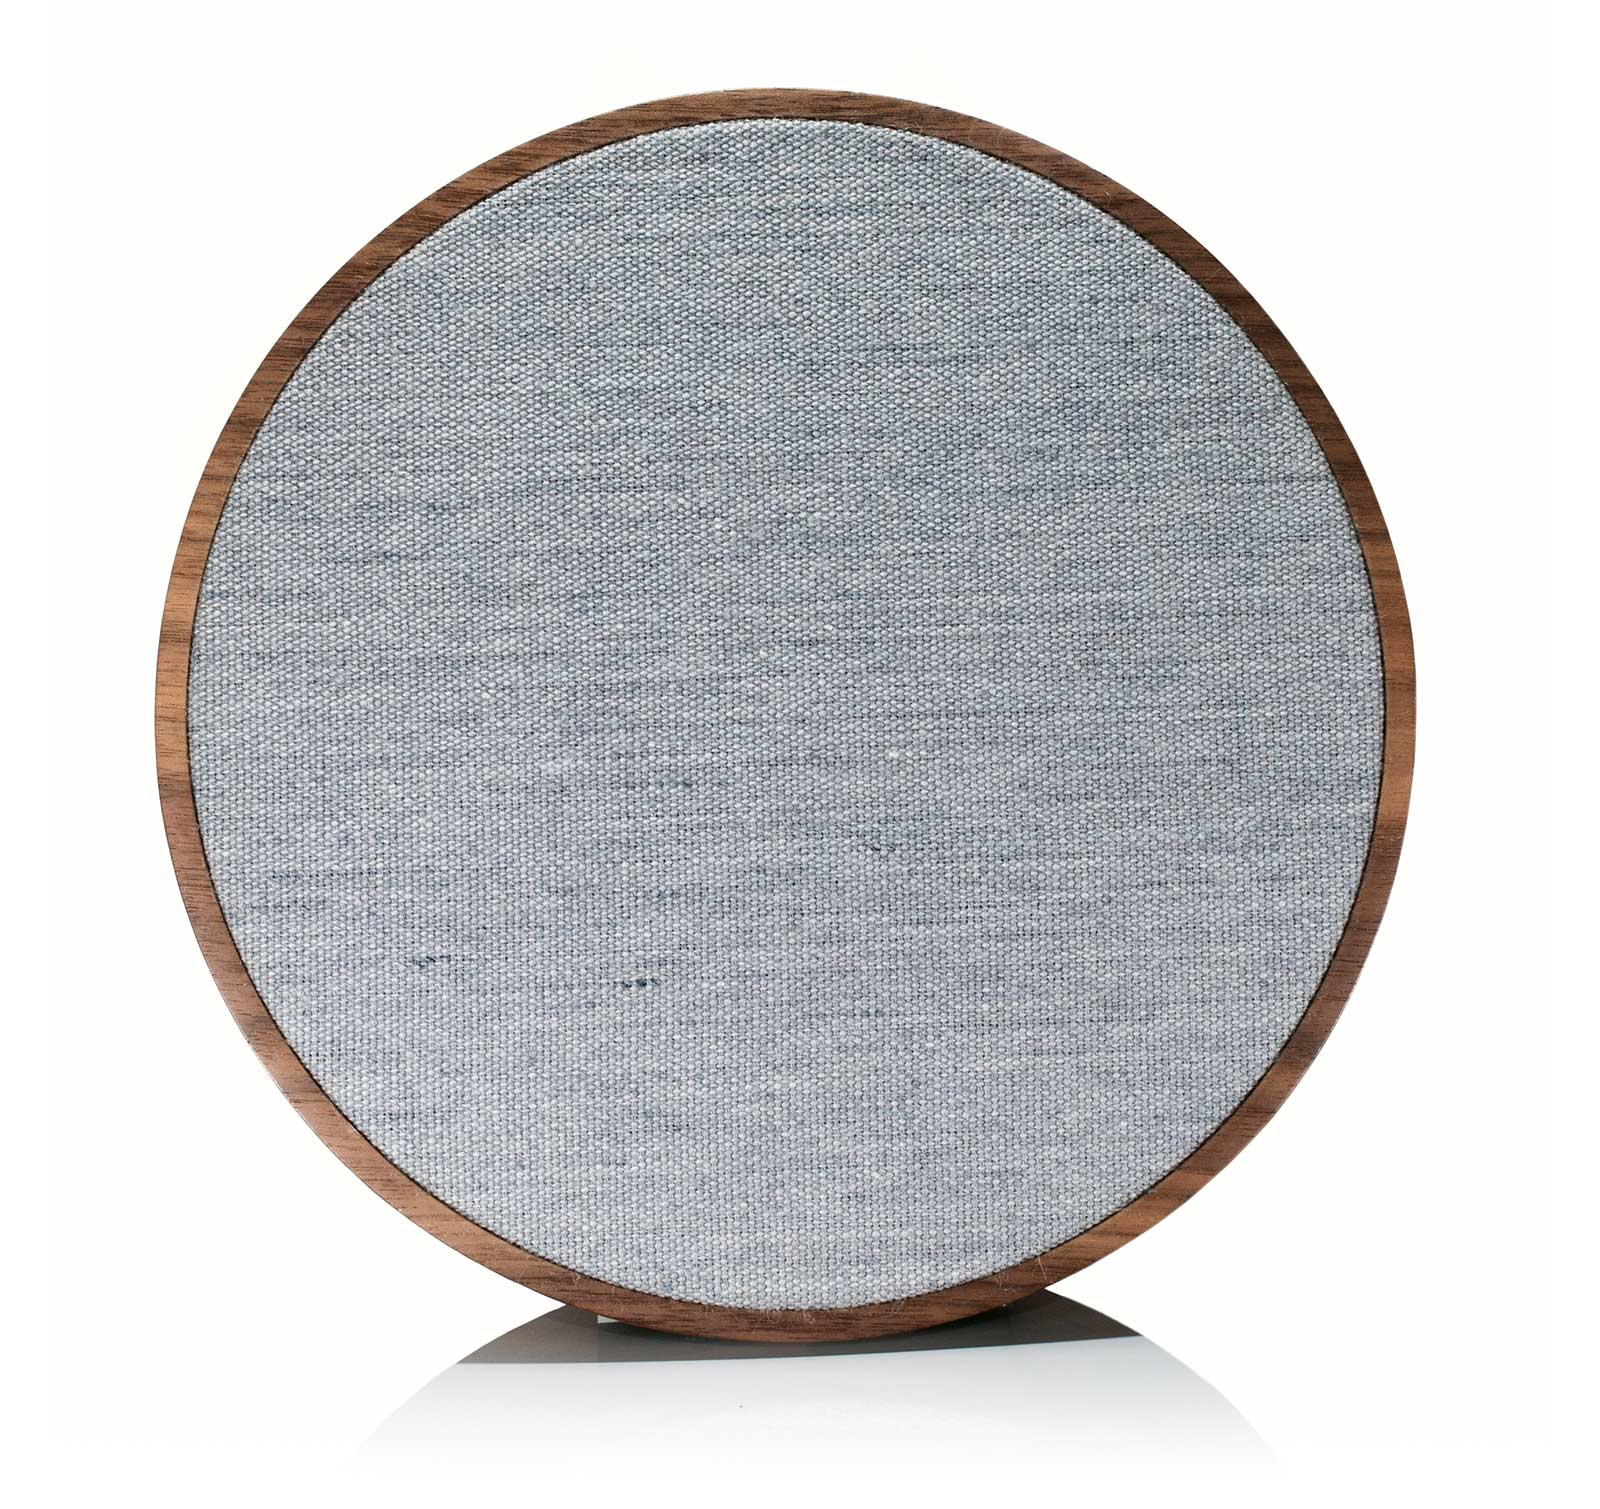 Tivoli ORB Walnut Gray Wireless Speaker by Tivoli